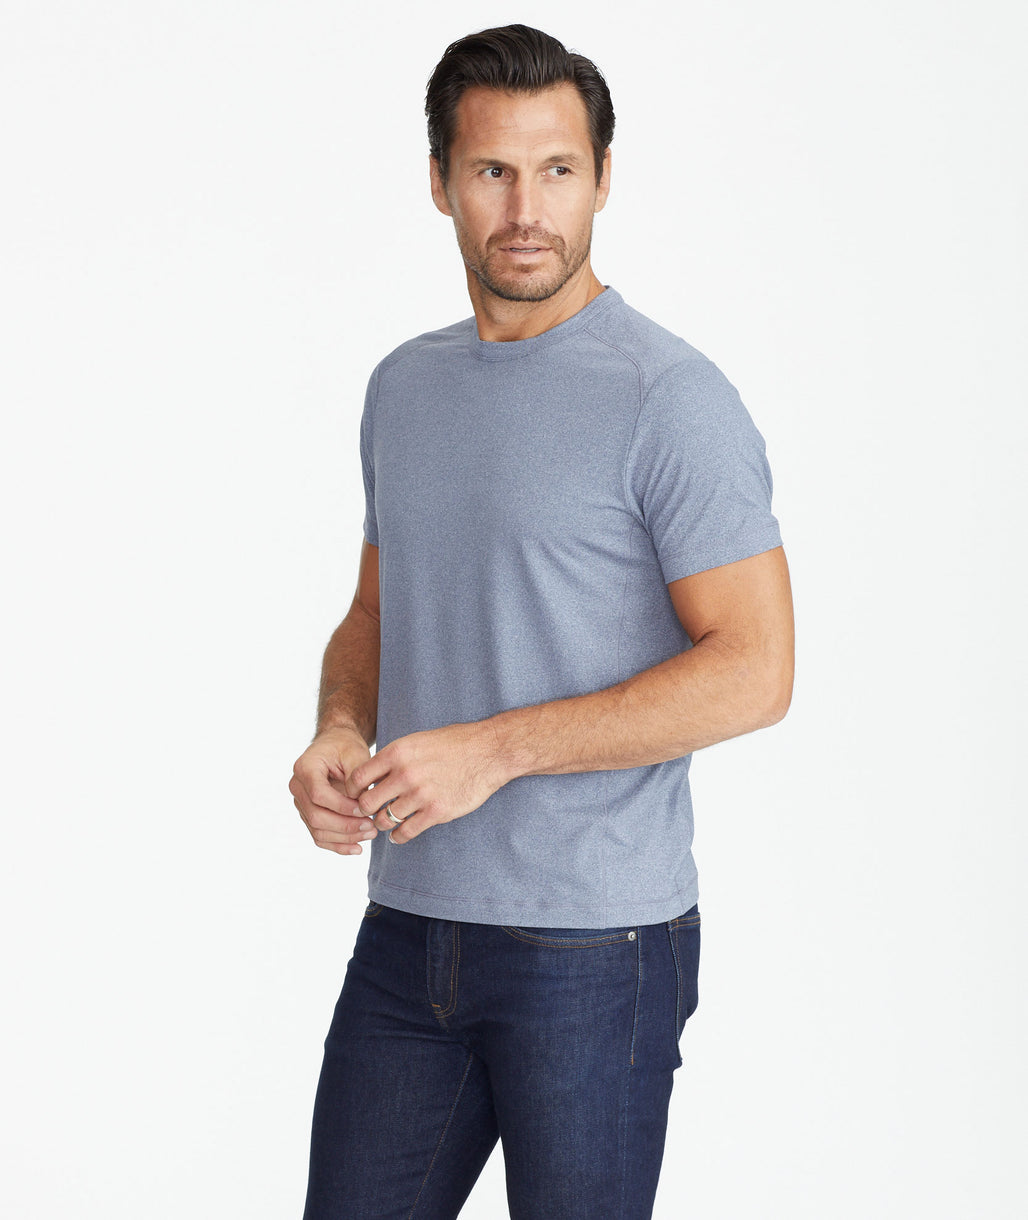 Model wearing a Blue Performance Tee